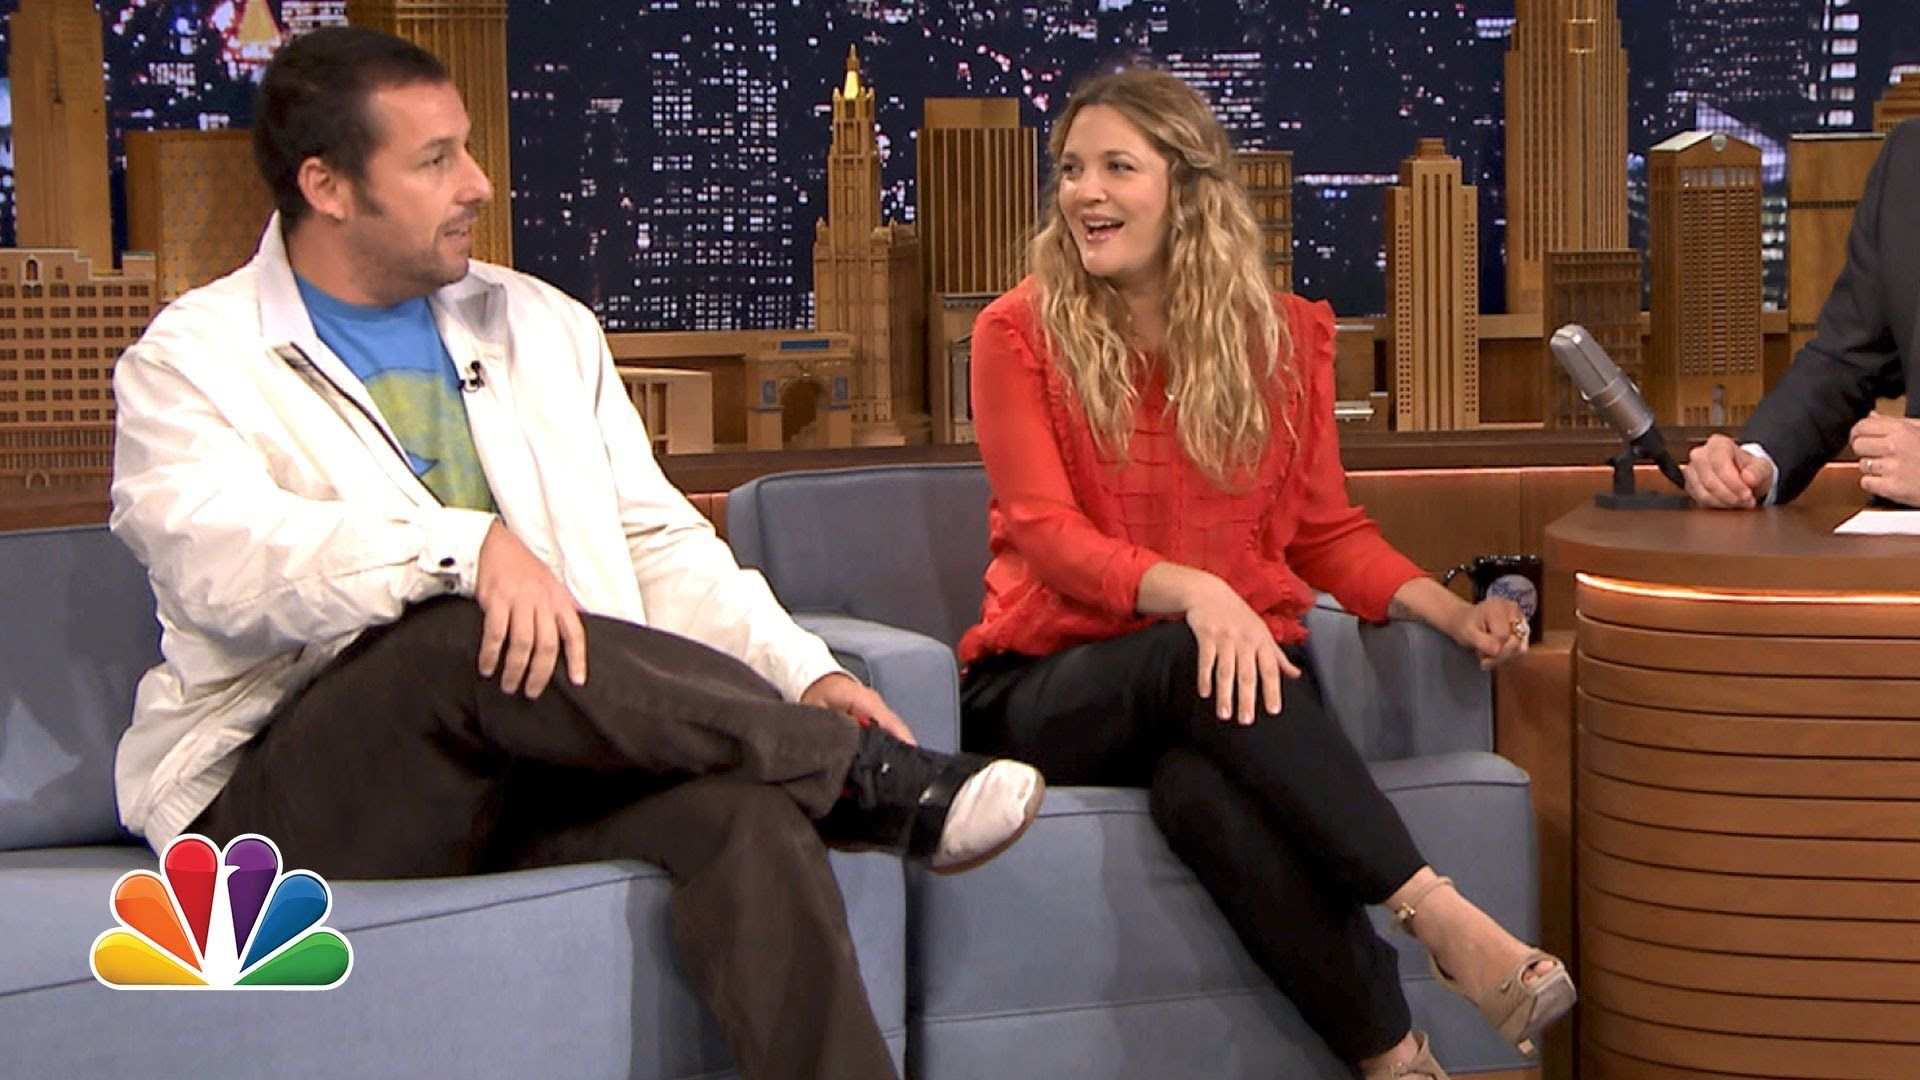 Adam Sandler Cosby Show drew barrymore gets a surprise call from adam sandler | late